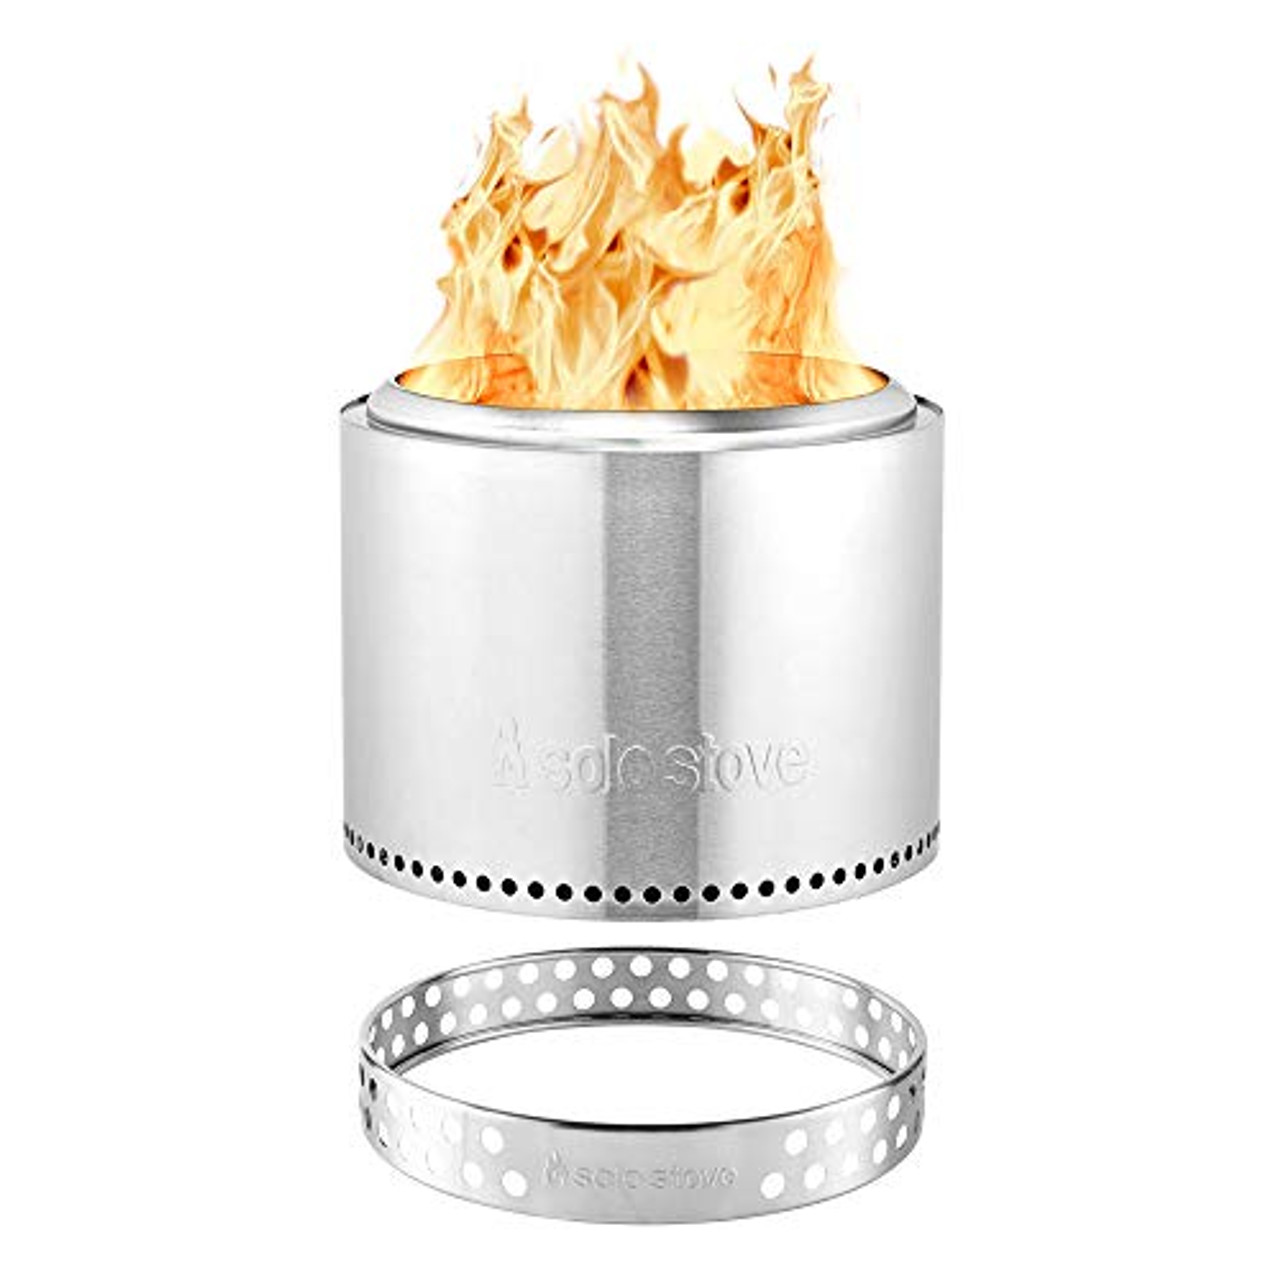 Solo Stove Bonfire Stainless Steel Wood Burning Smokeless Bonfire with Stand and Carrying Case, Large 19.5 inch